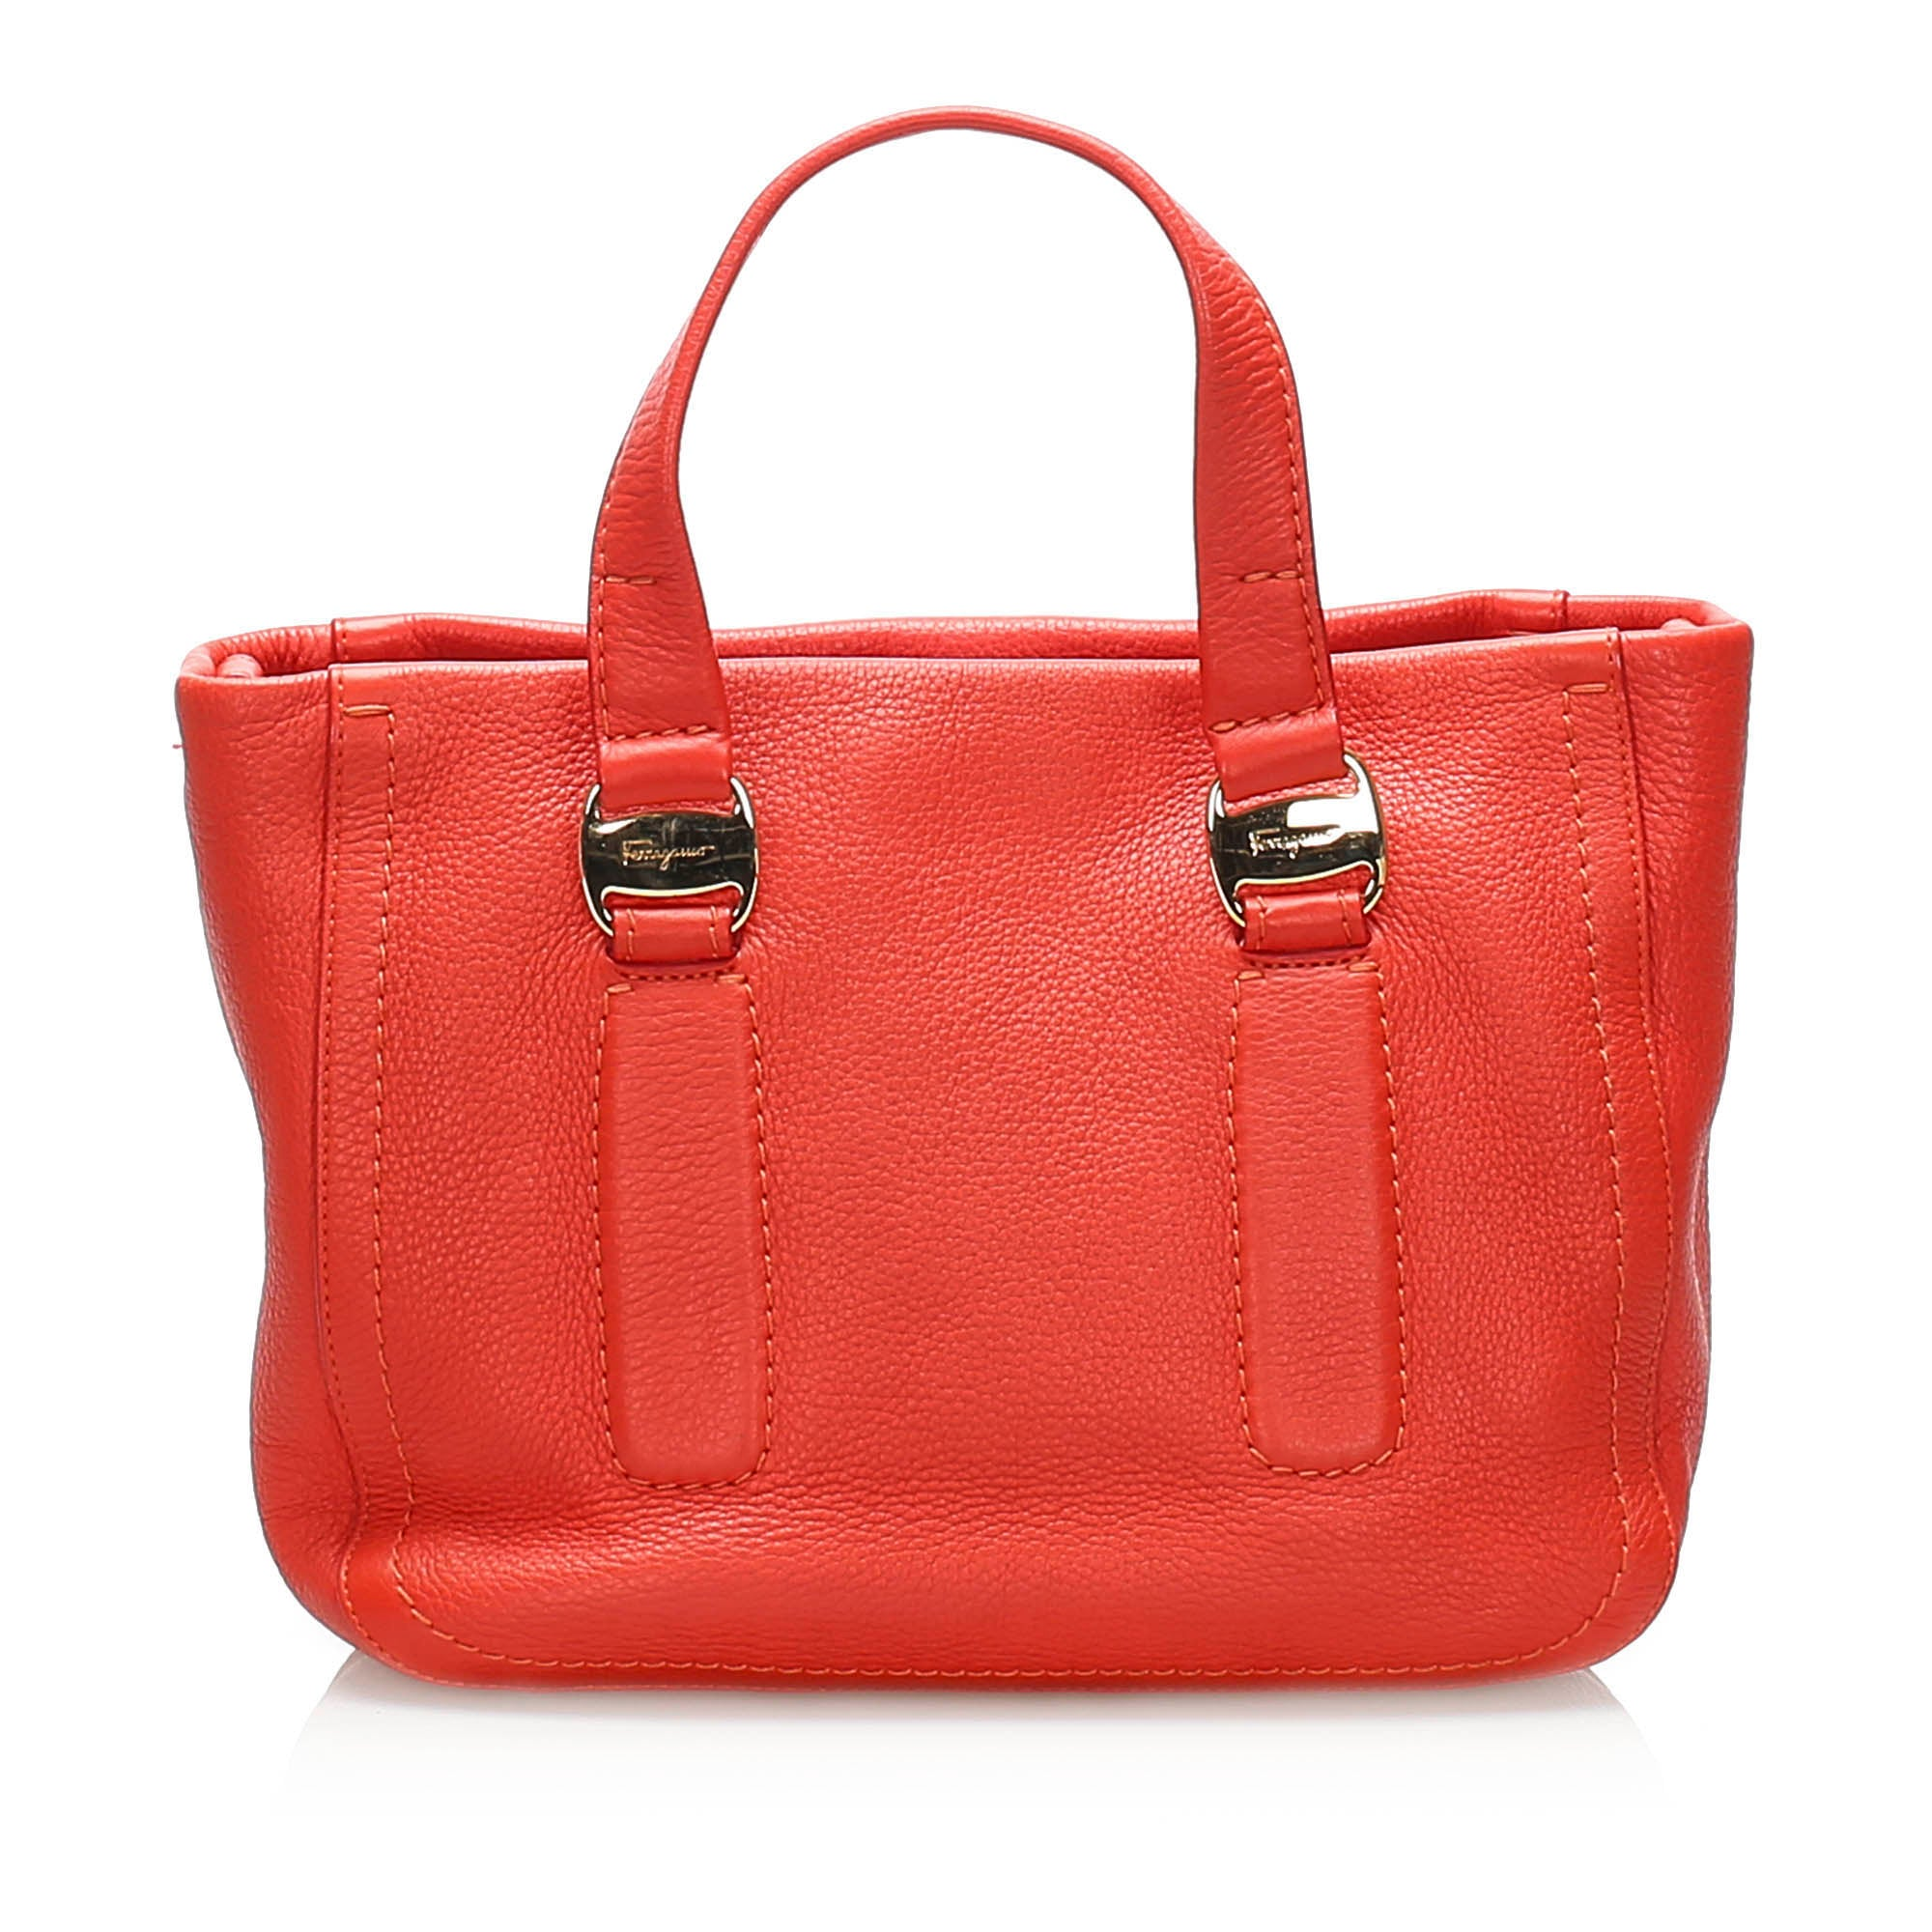 Ferragamo Red Vara Leather Satchel